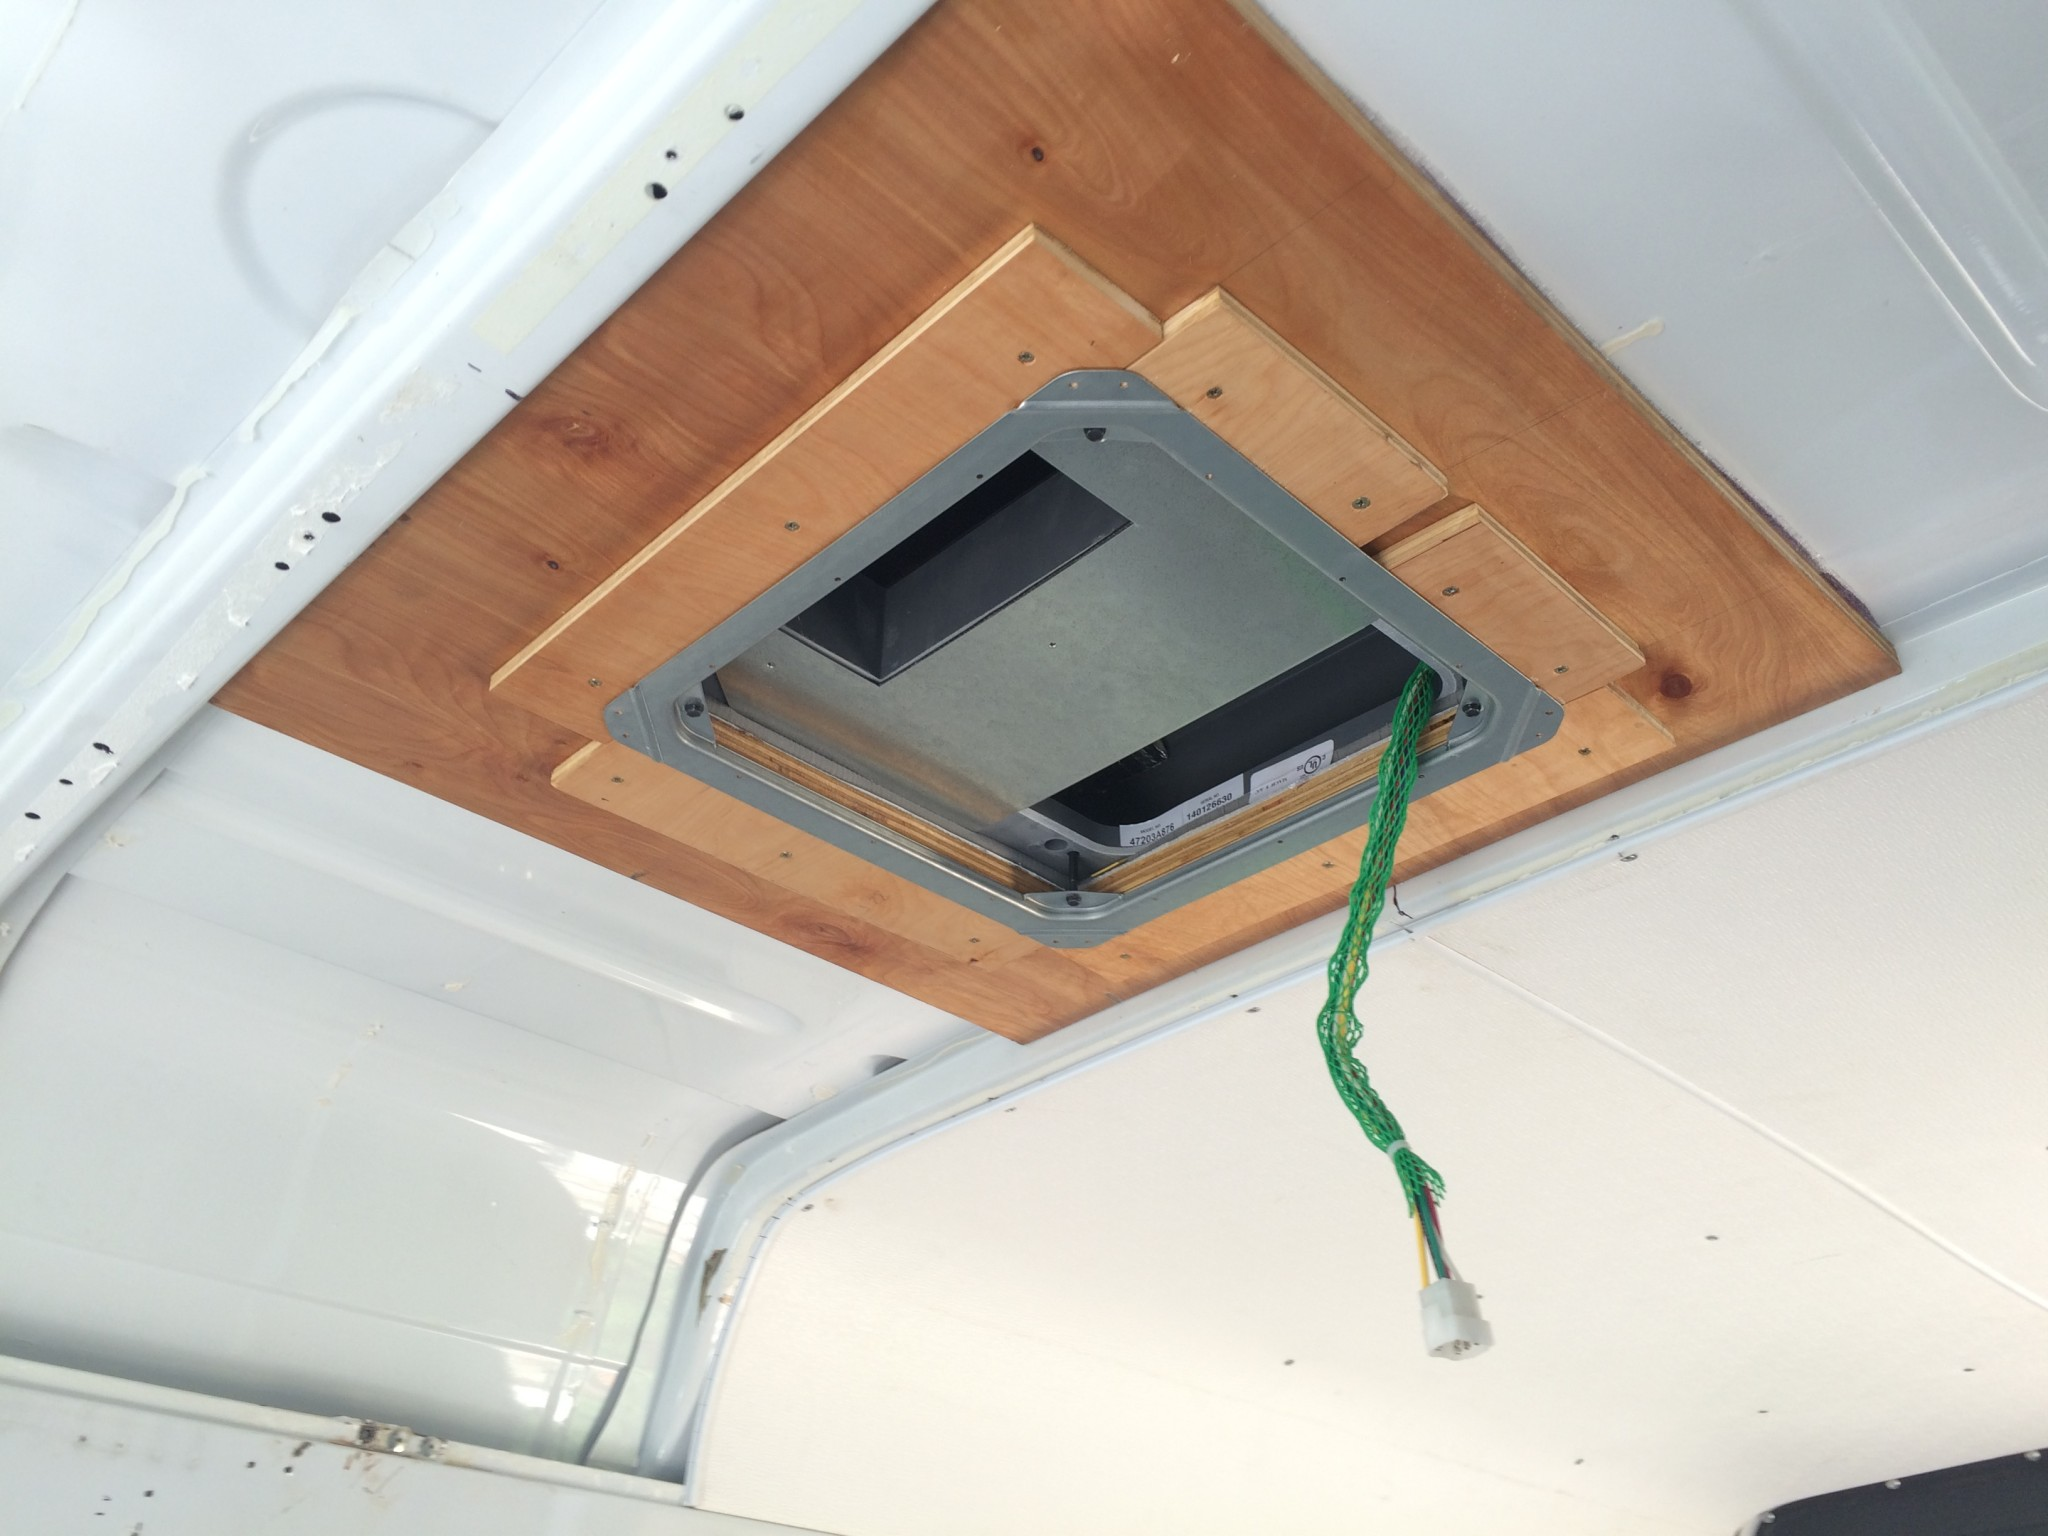 Coleman Mach 8 rooftop unit secured with the bracket and plywood support plate from the inside of the Van